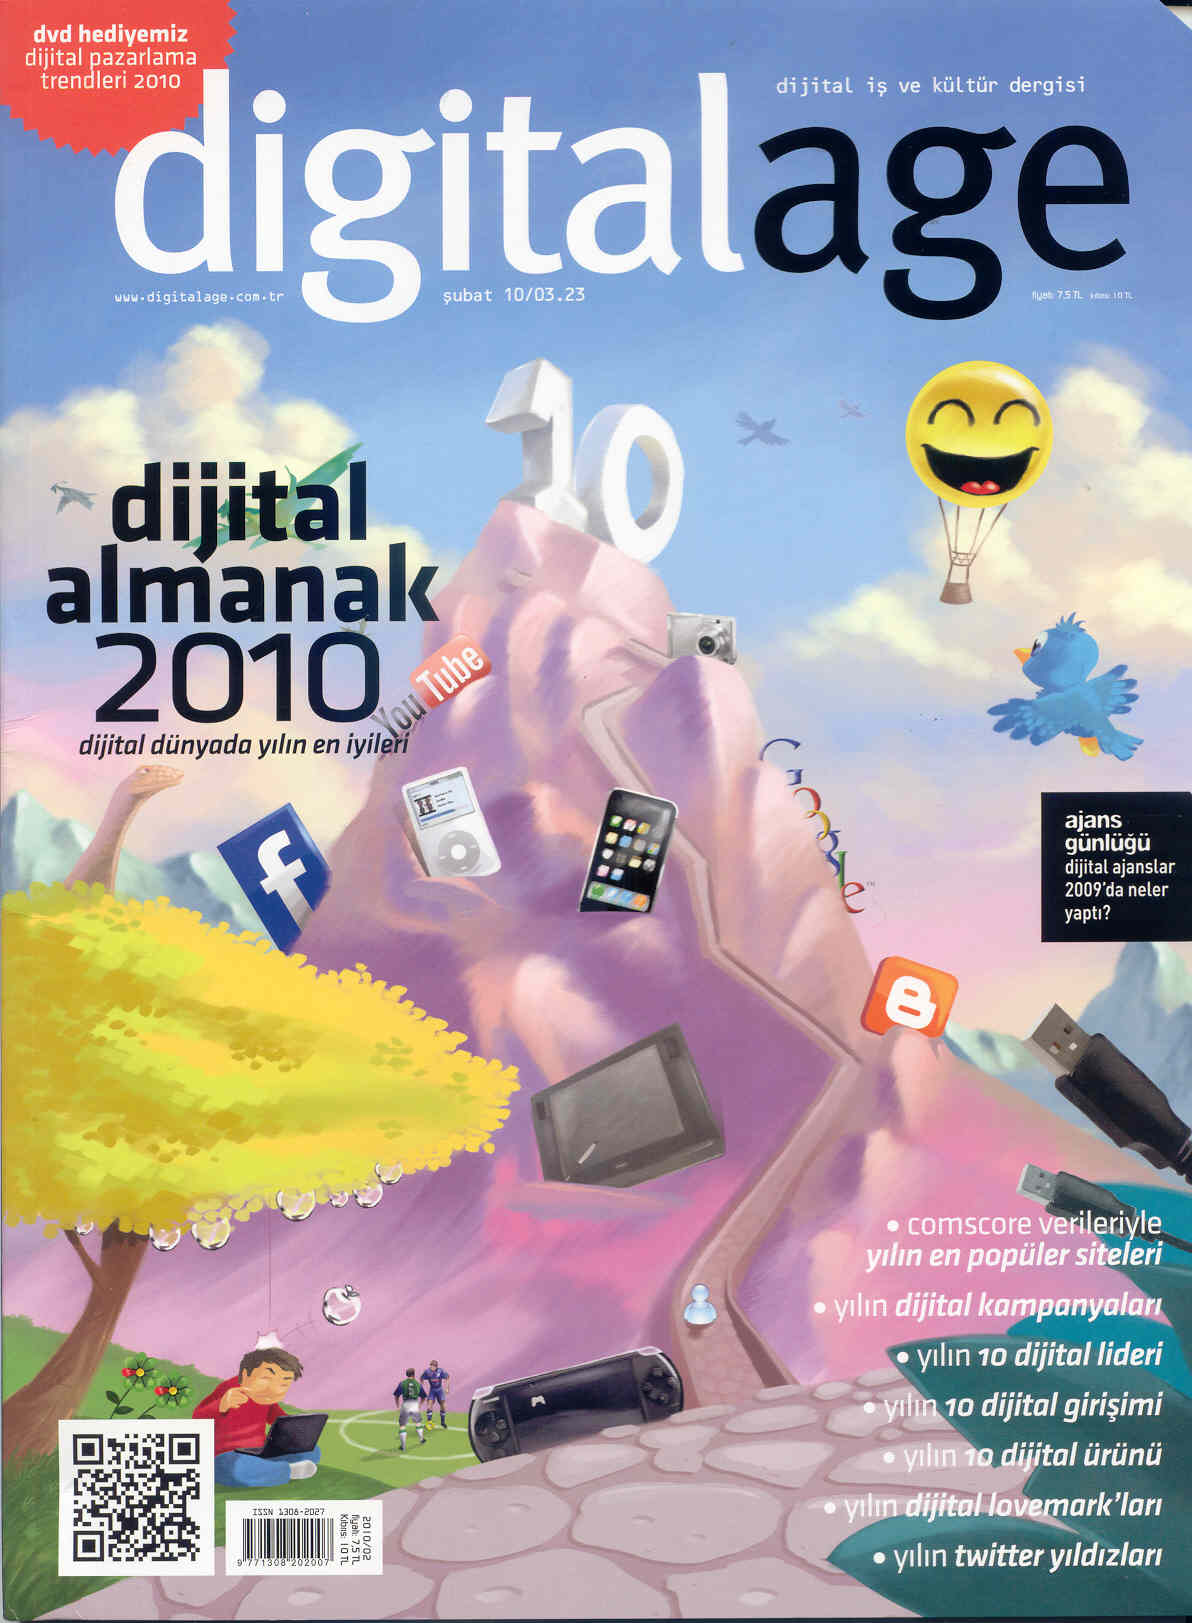 digitalage_2010_subat